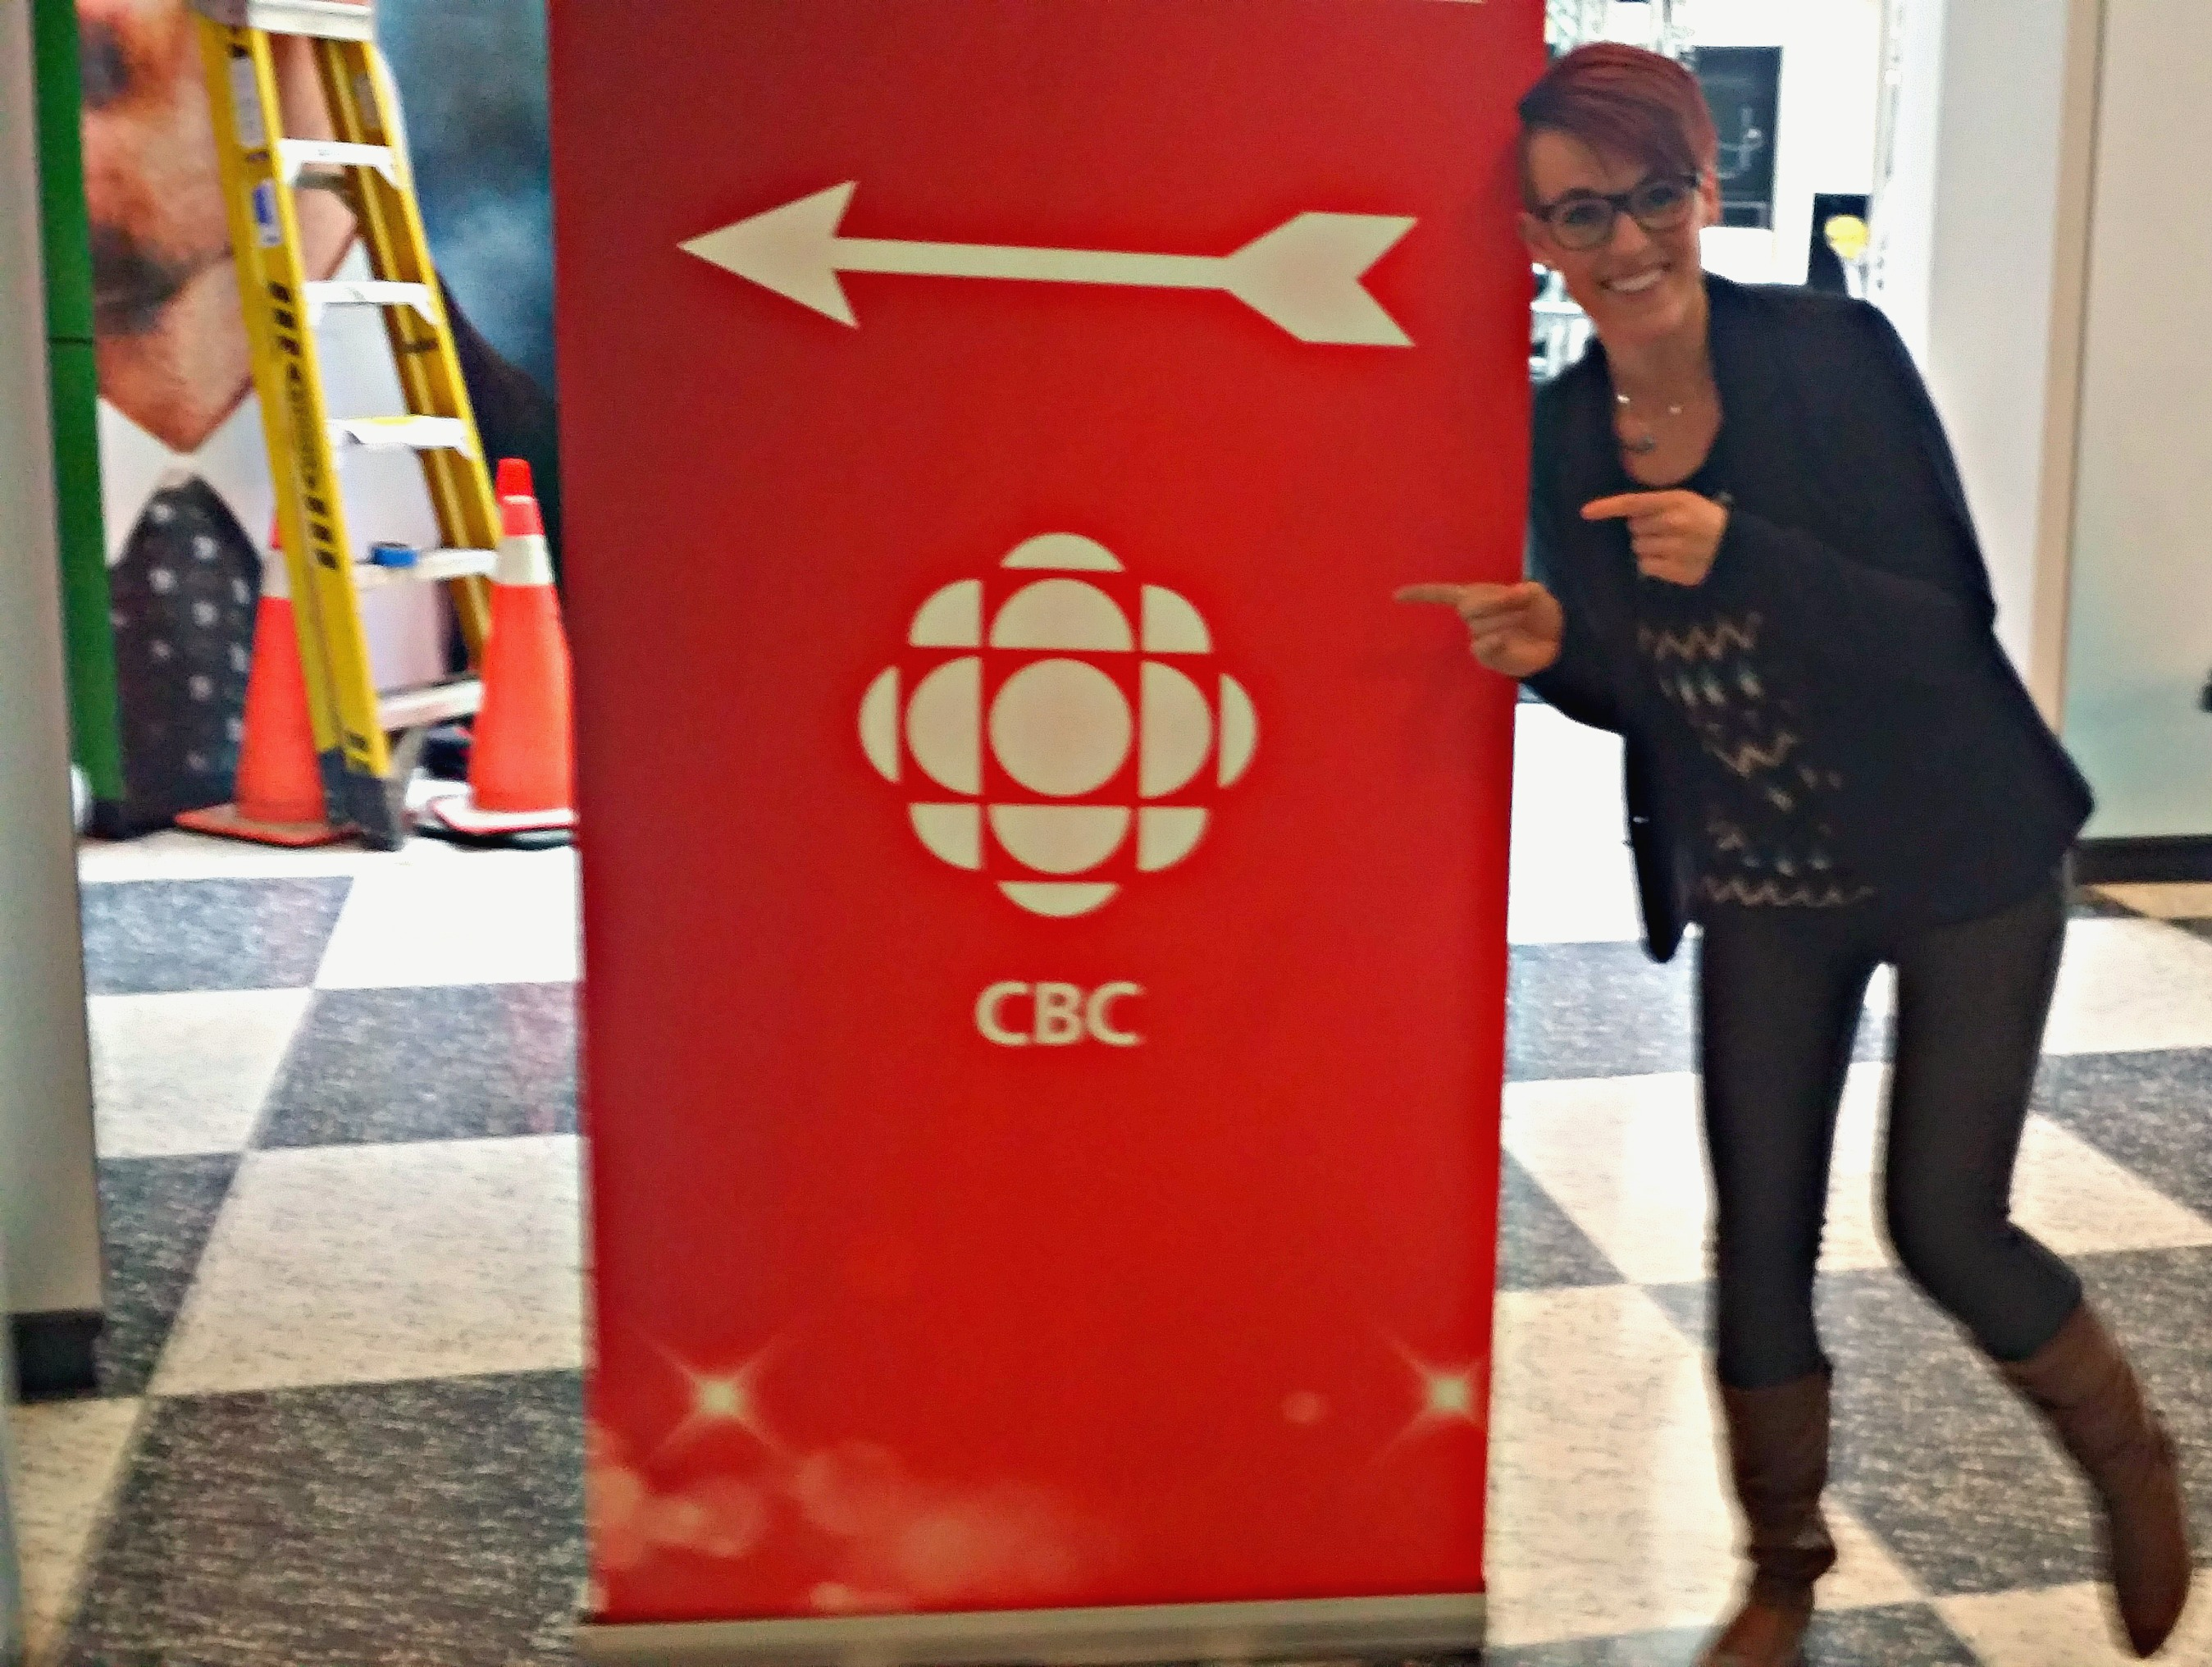 The Captioning Group - CBC